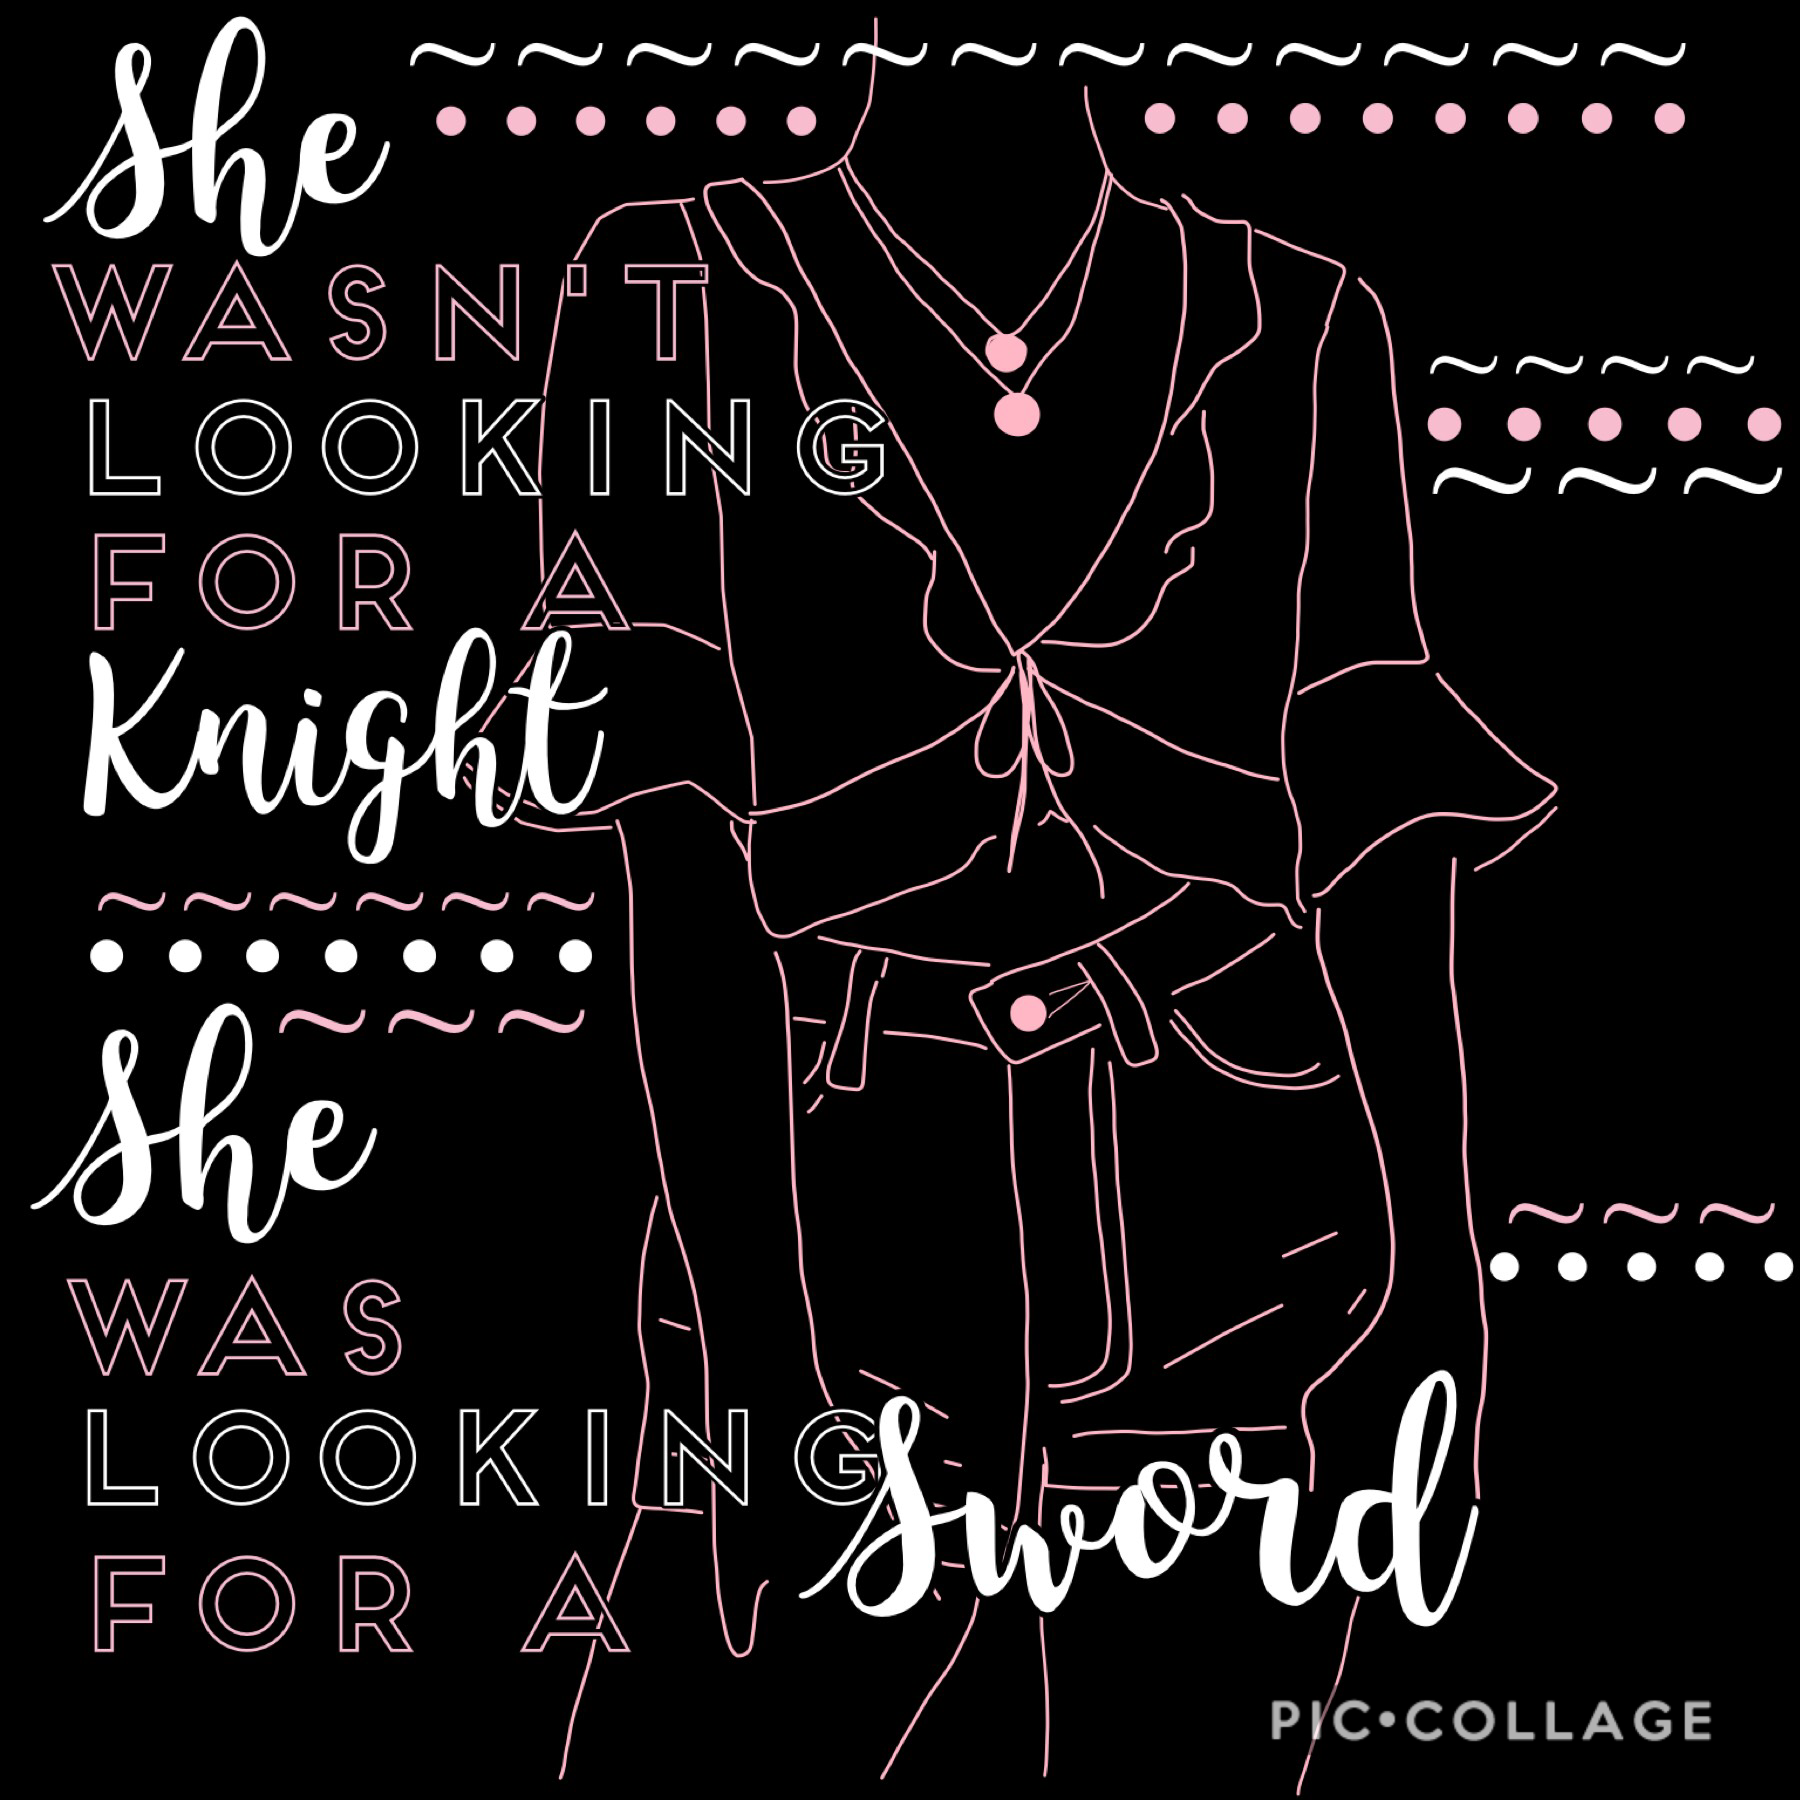 🎀t a p🎀 something a little different what do u think? Do u like my drawings or pictures with text??? Let me know ur opinion what style do u like that i do? What style do u not like?? Thanks for the feedback